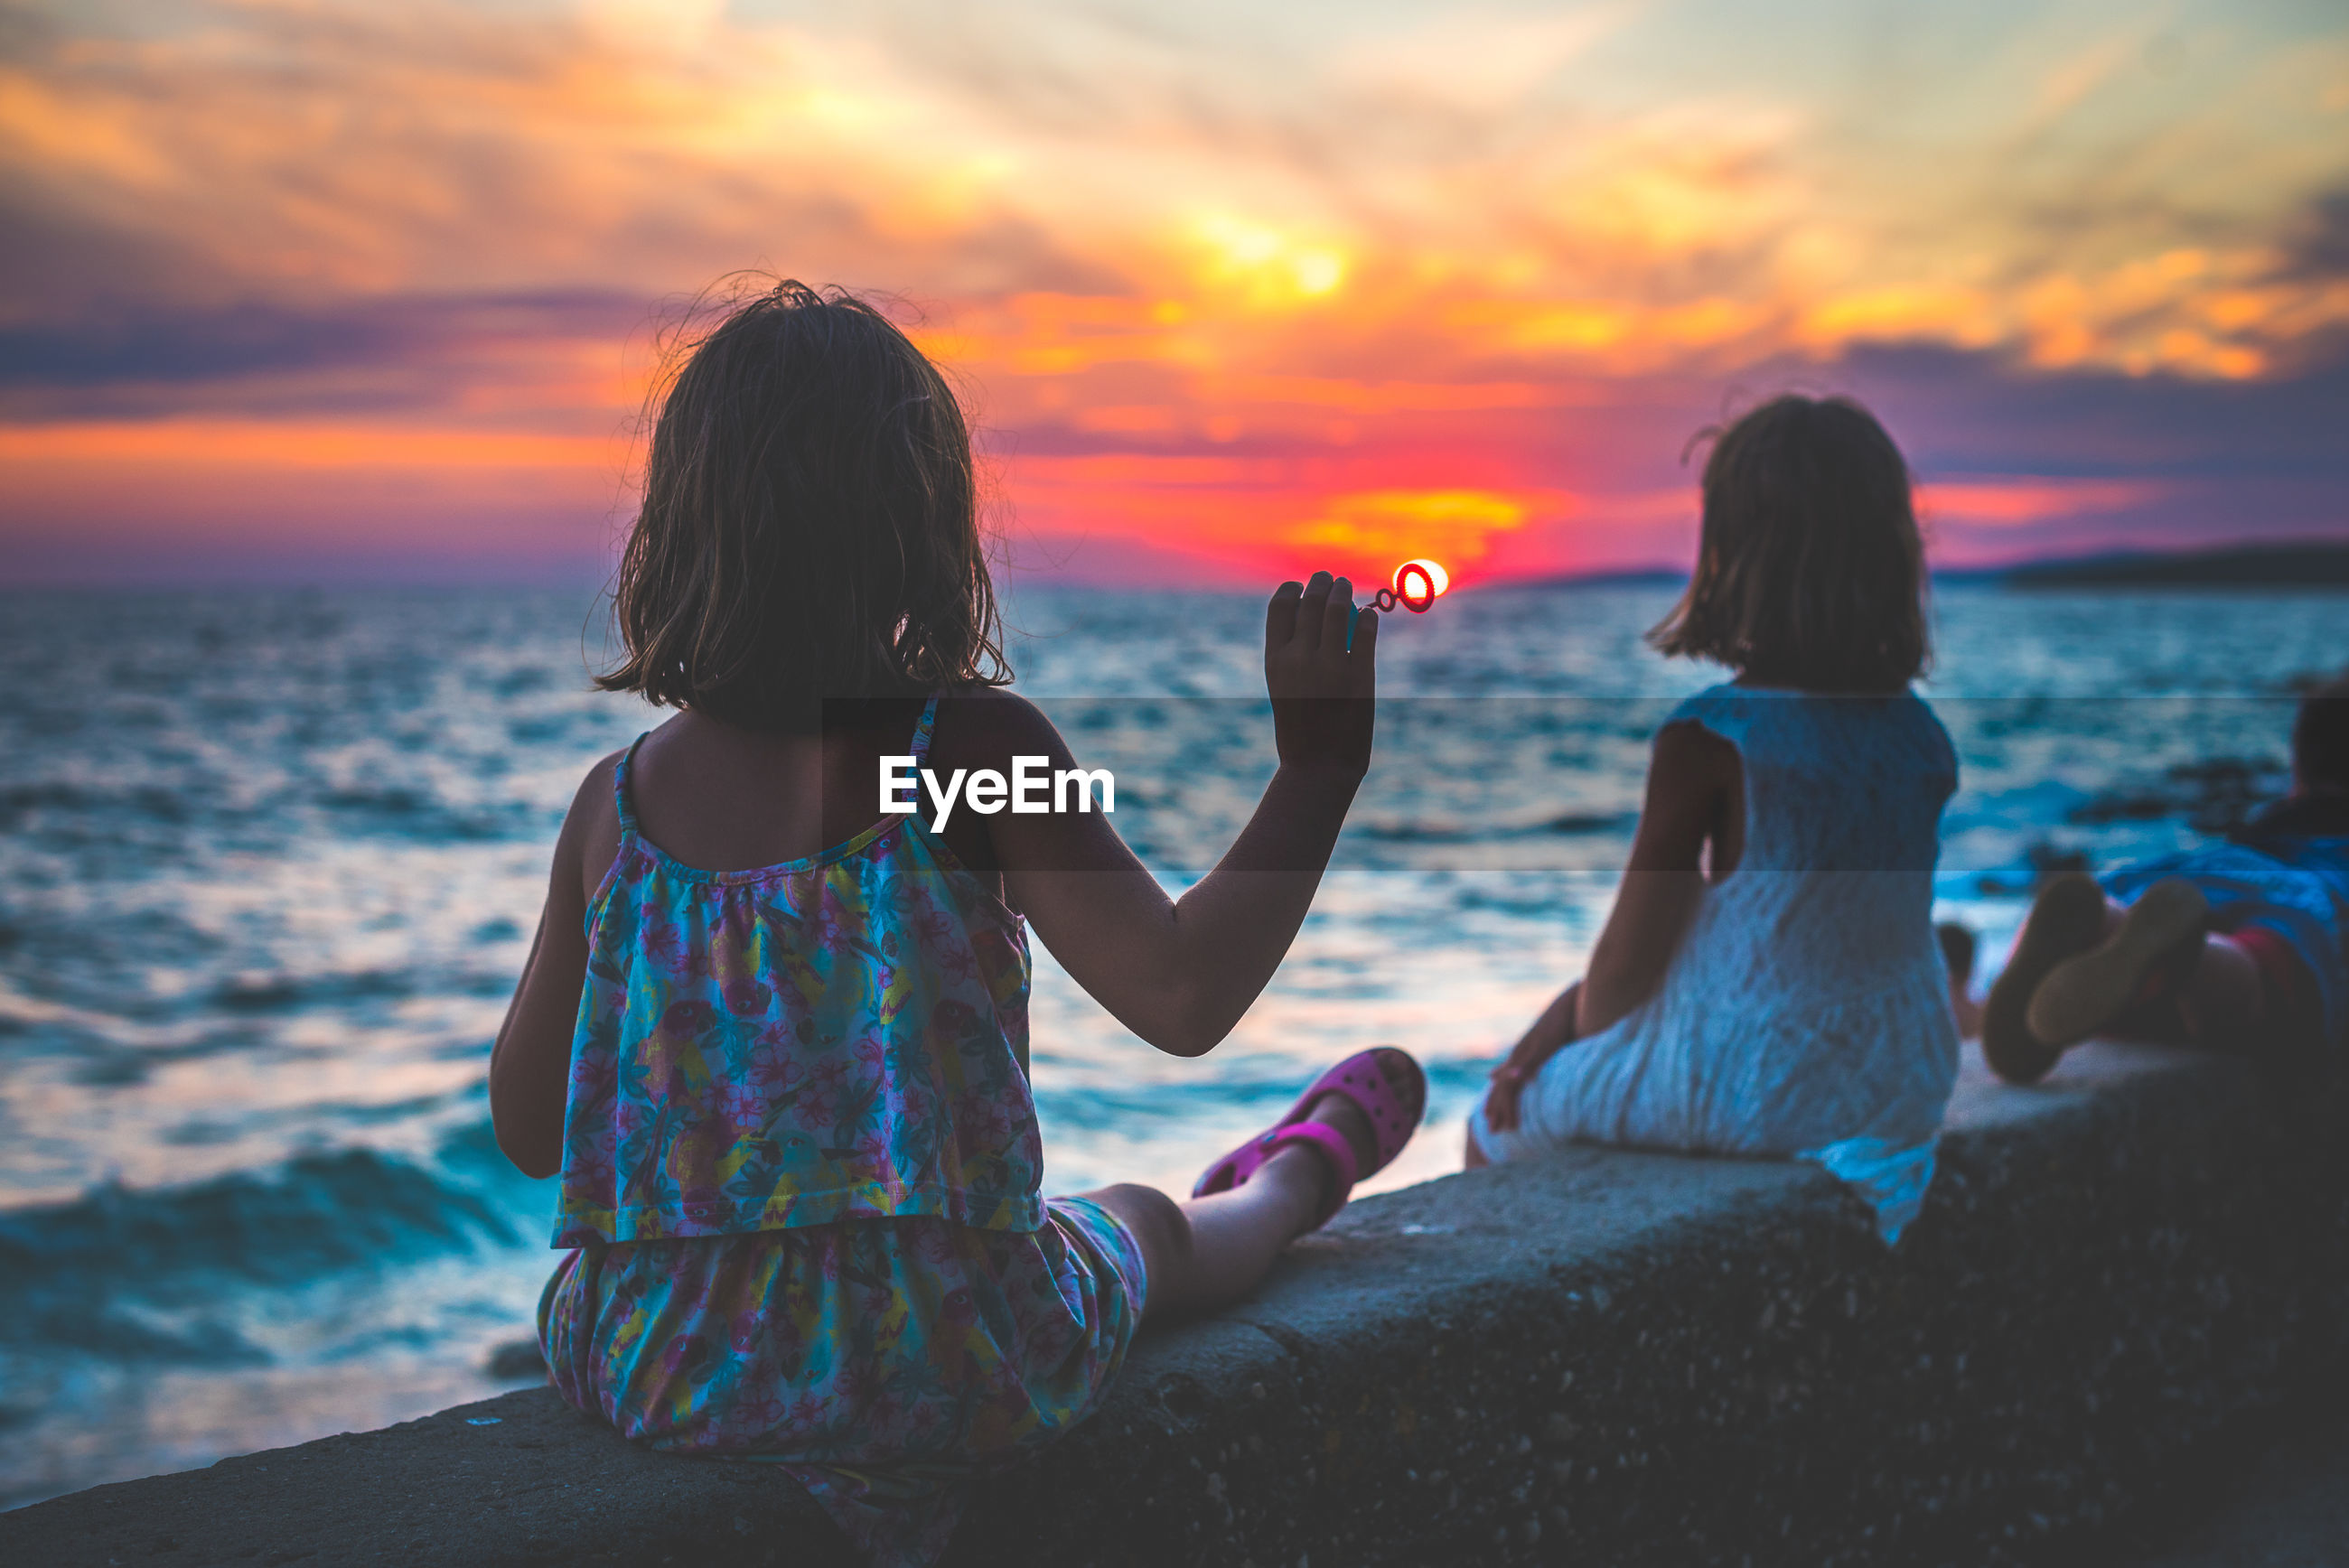 Girls sitting on retaining wall against sky during sunset